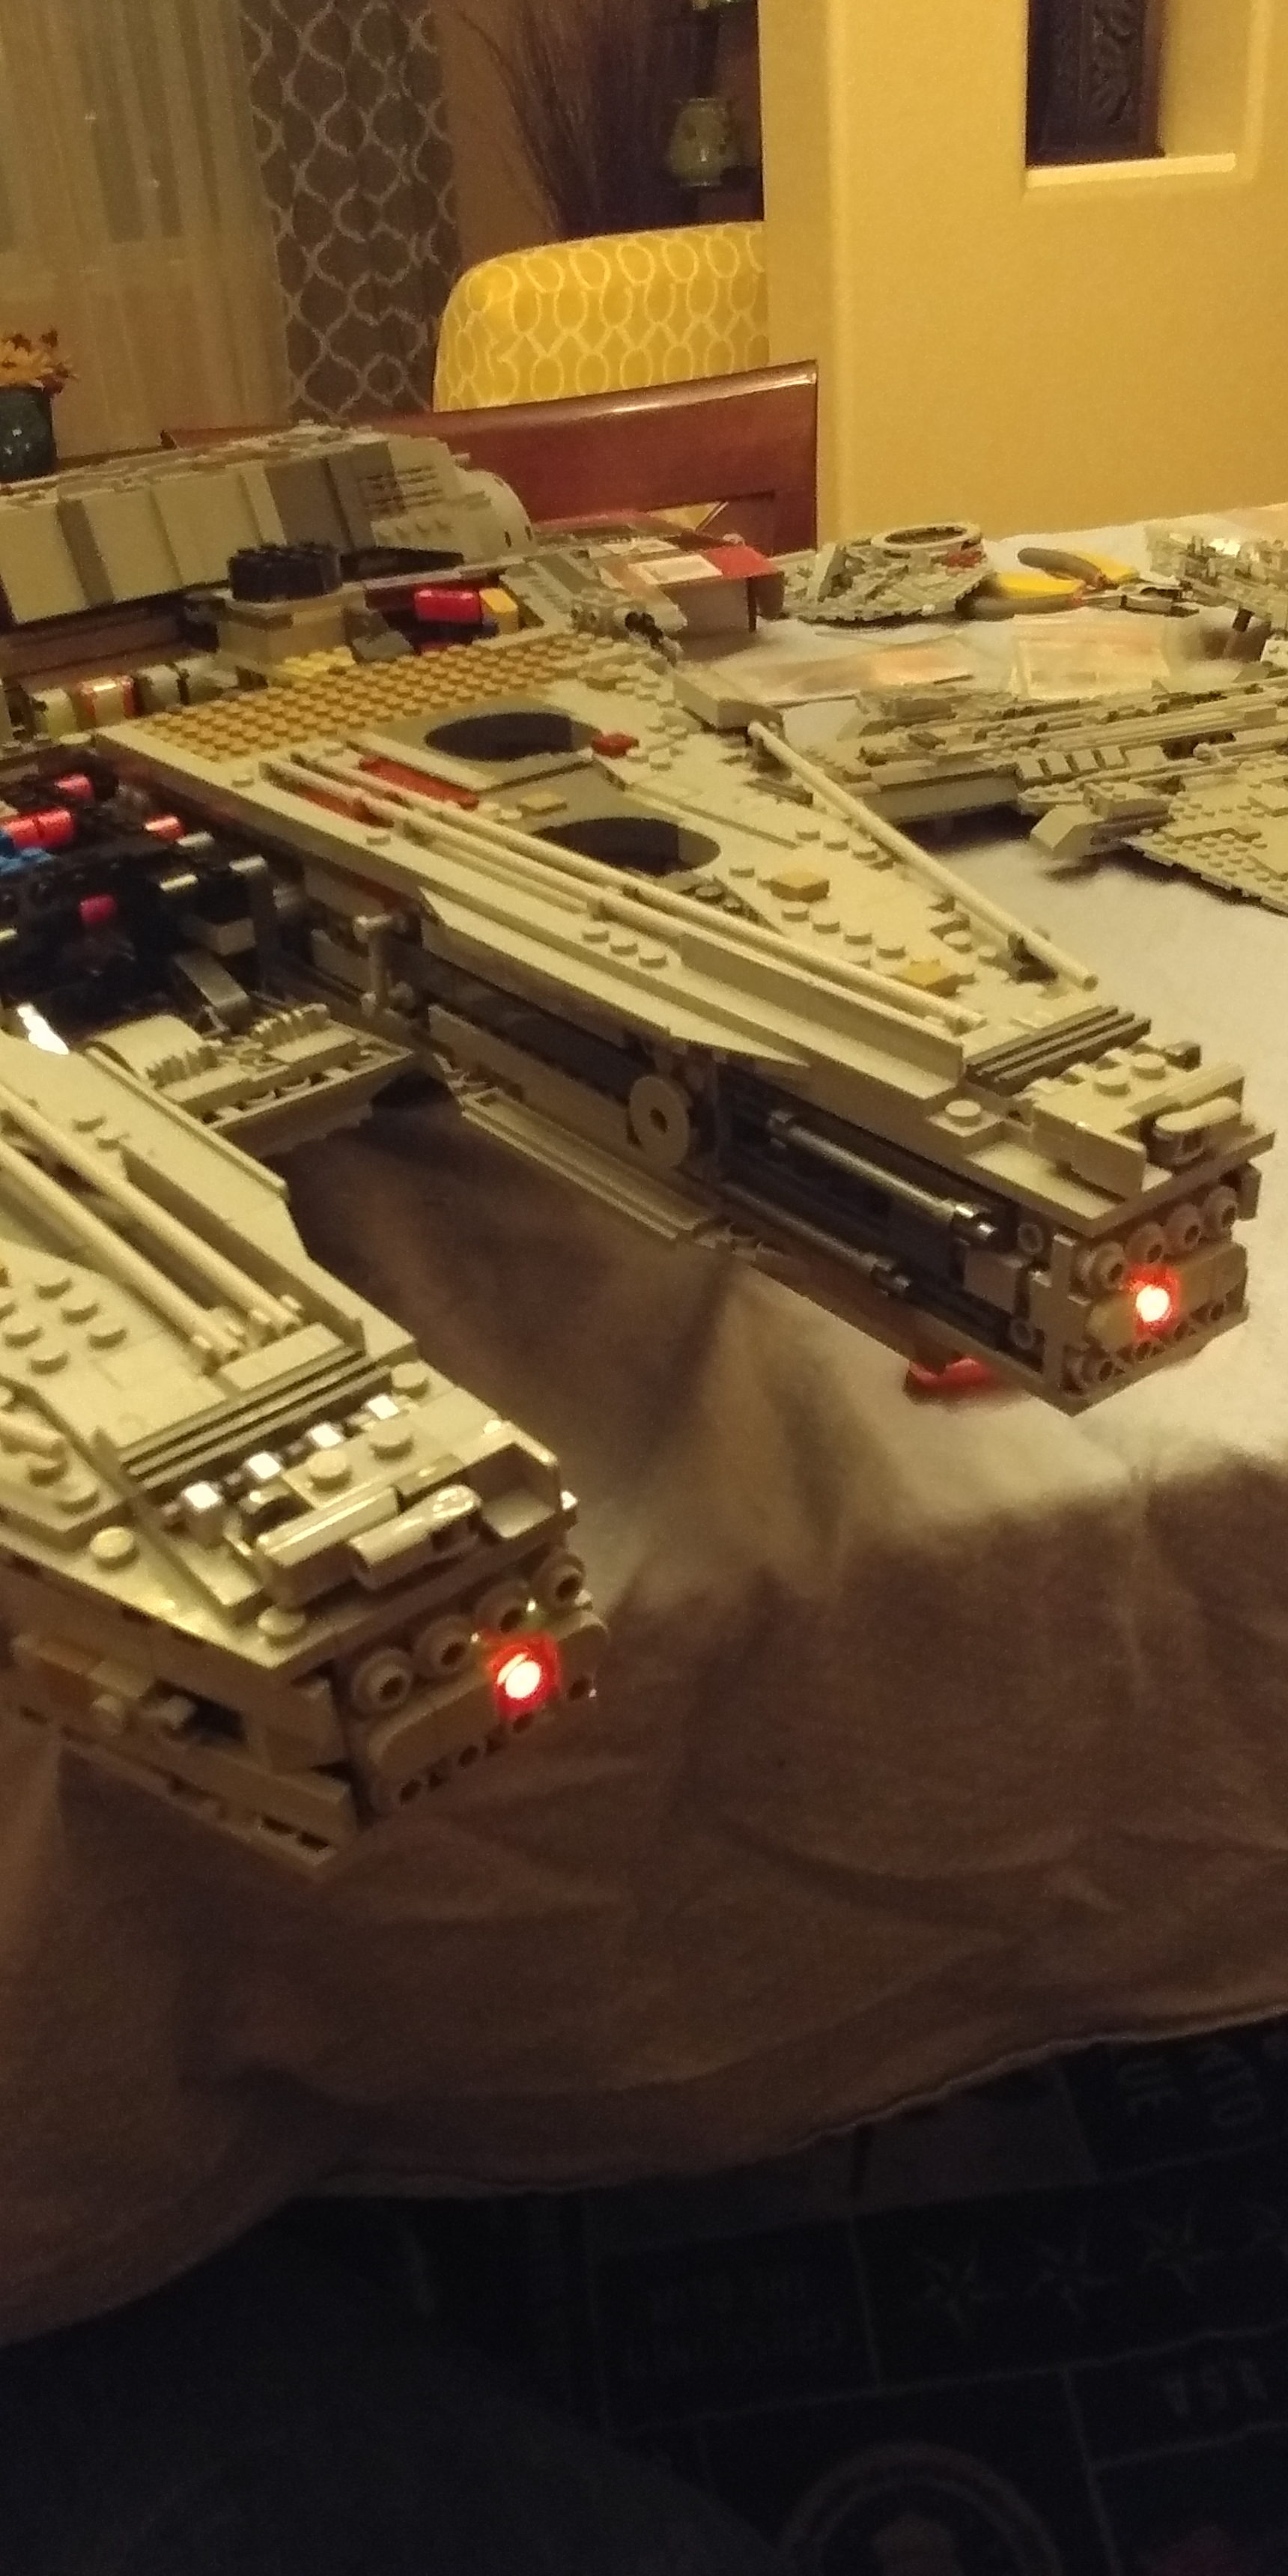 New Millennium Falcon 75192 What Lights Do I Use For A Specific Advice Desired On My Model Railroad Building Light Controller Circuit Ill Have To Break Out The Multimeter Too See How Resolve This Any Tips Rob Klingberg